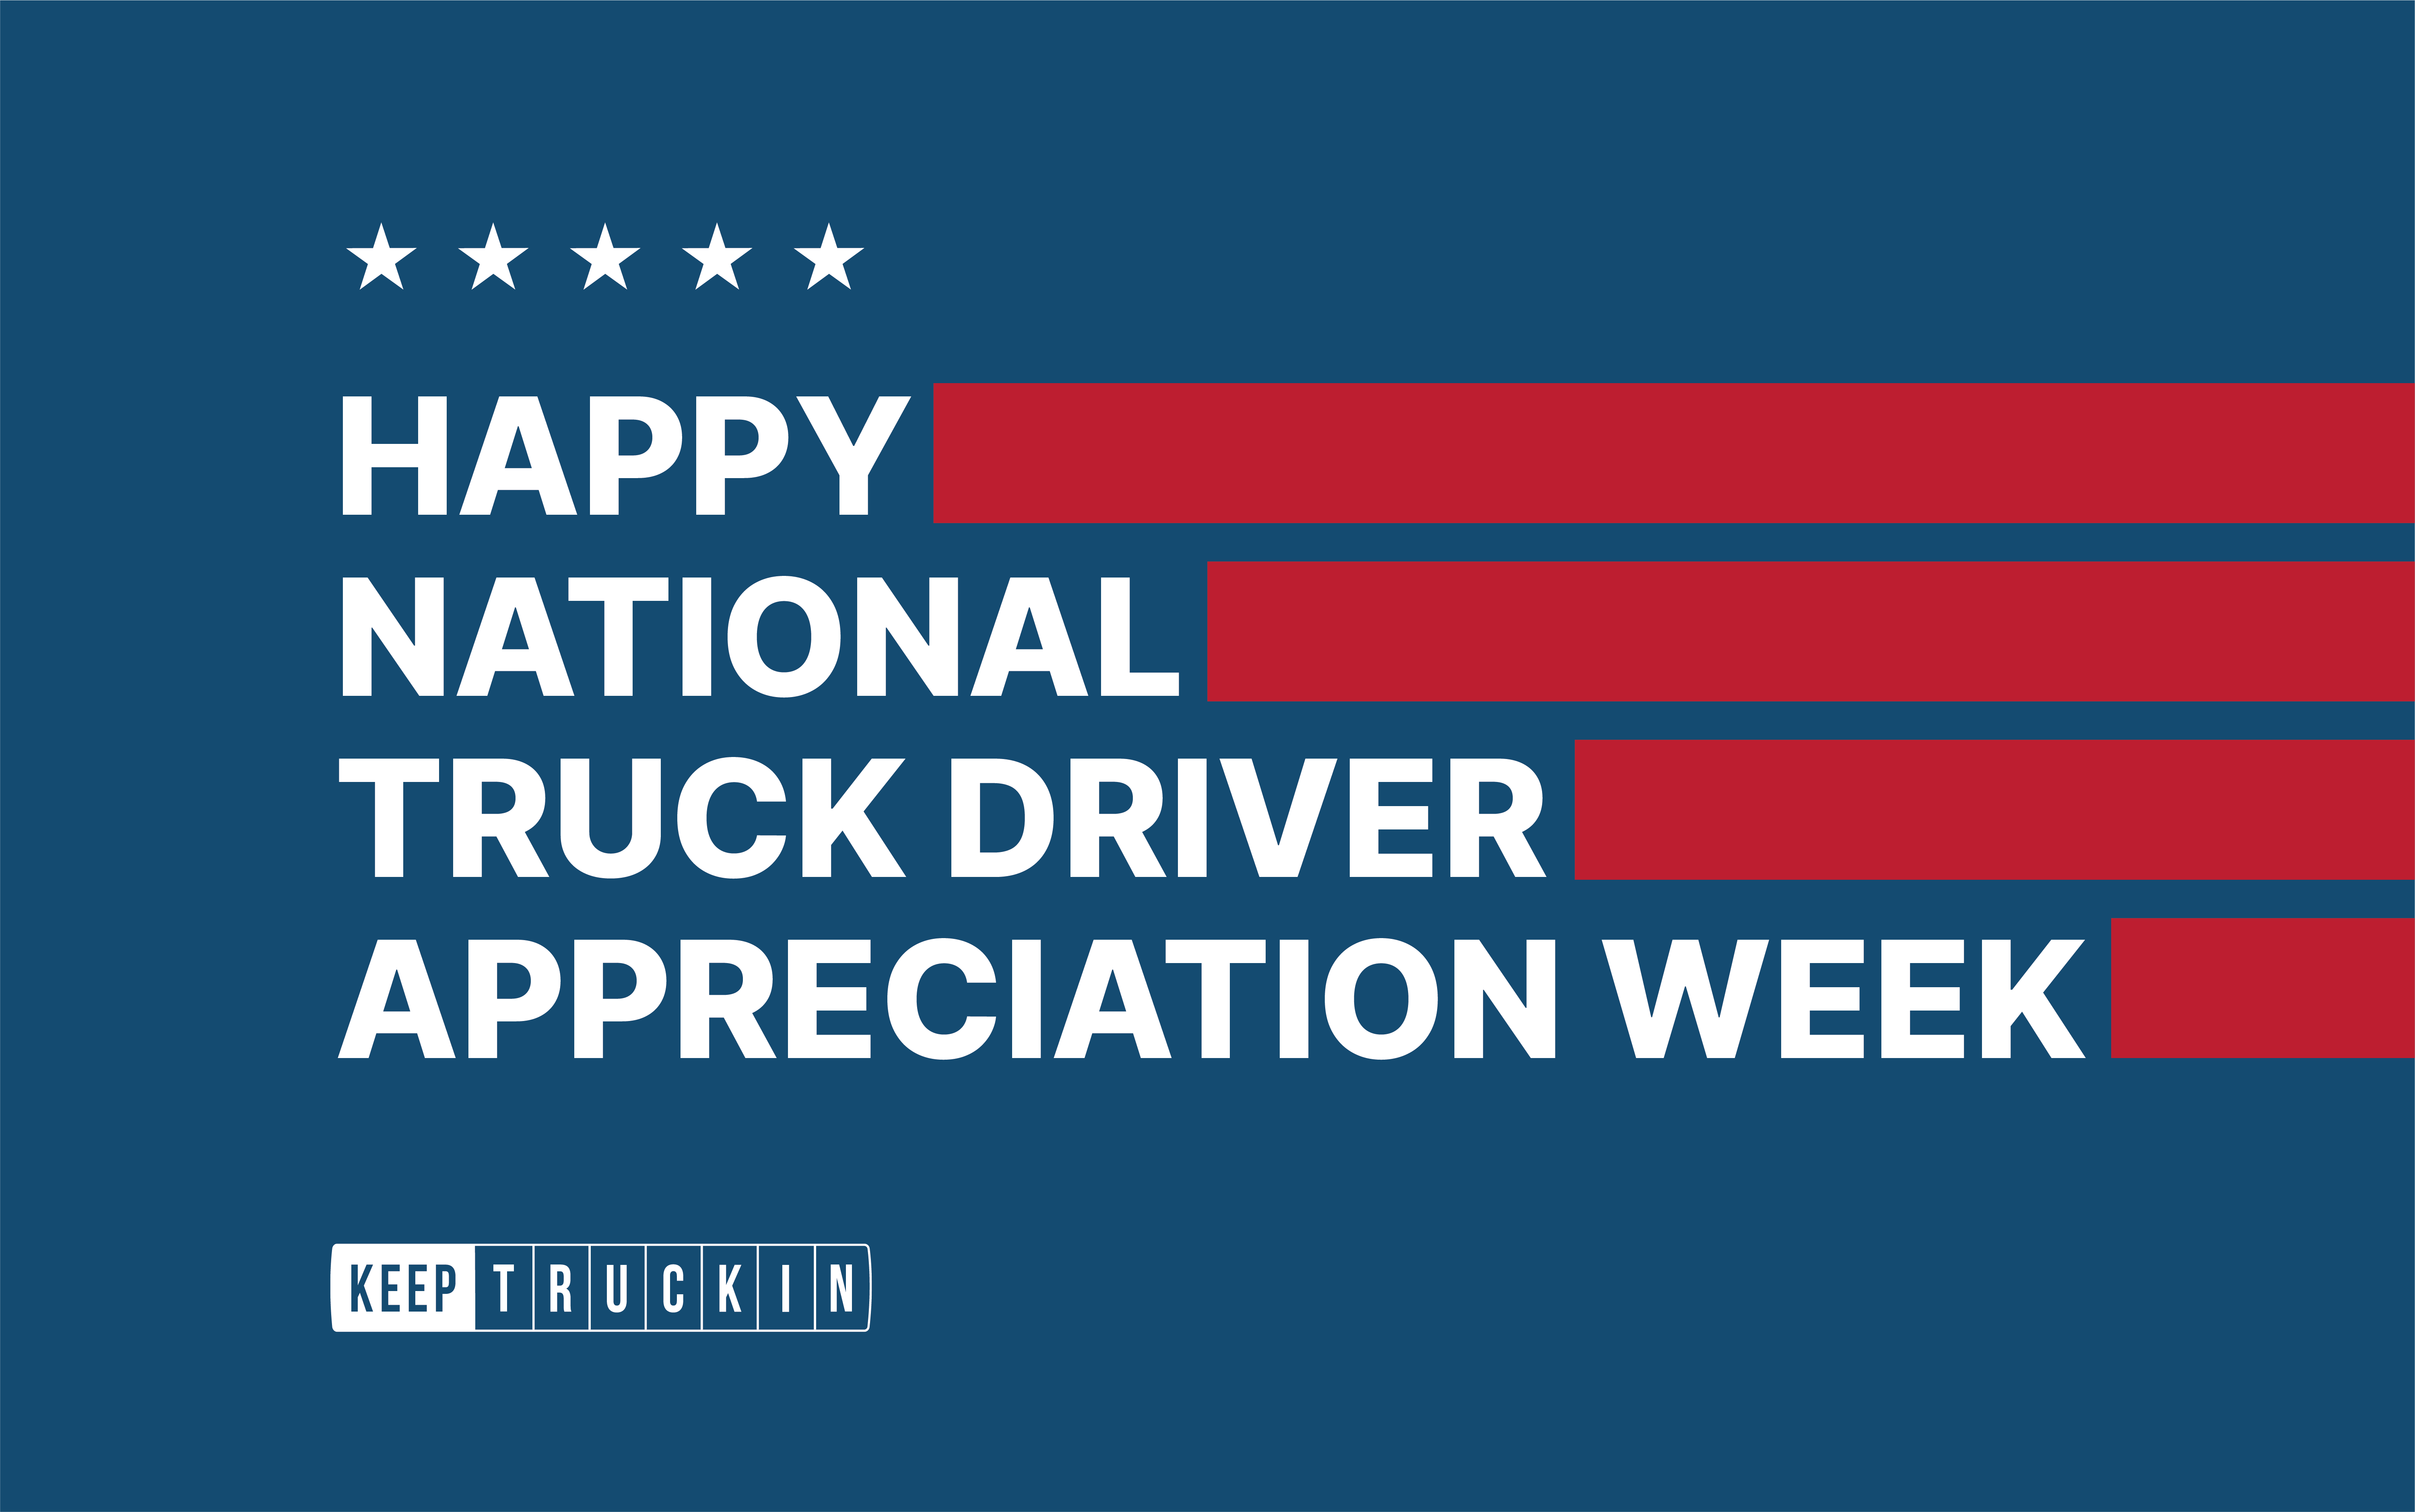 National Truck Driver Appreciation Week shows the value of employee recognition